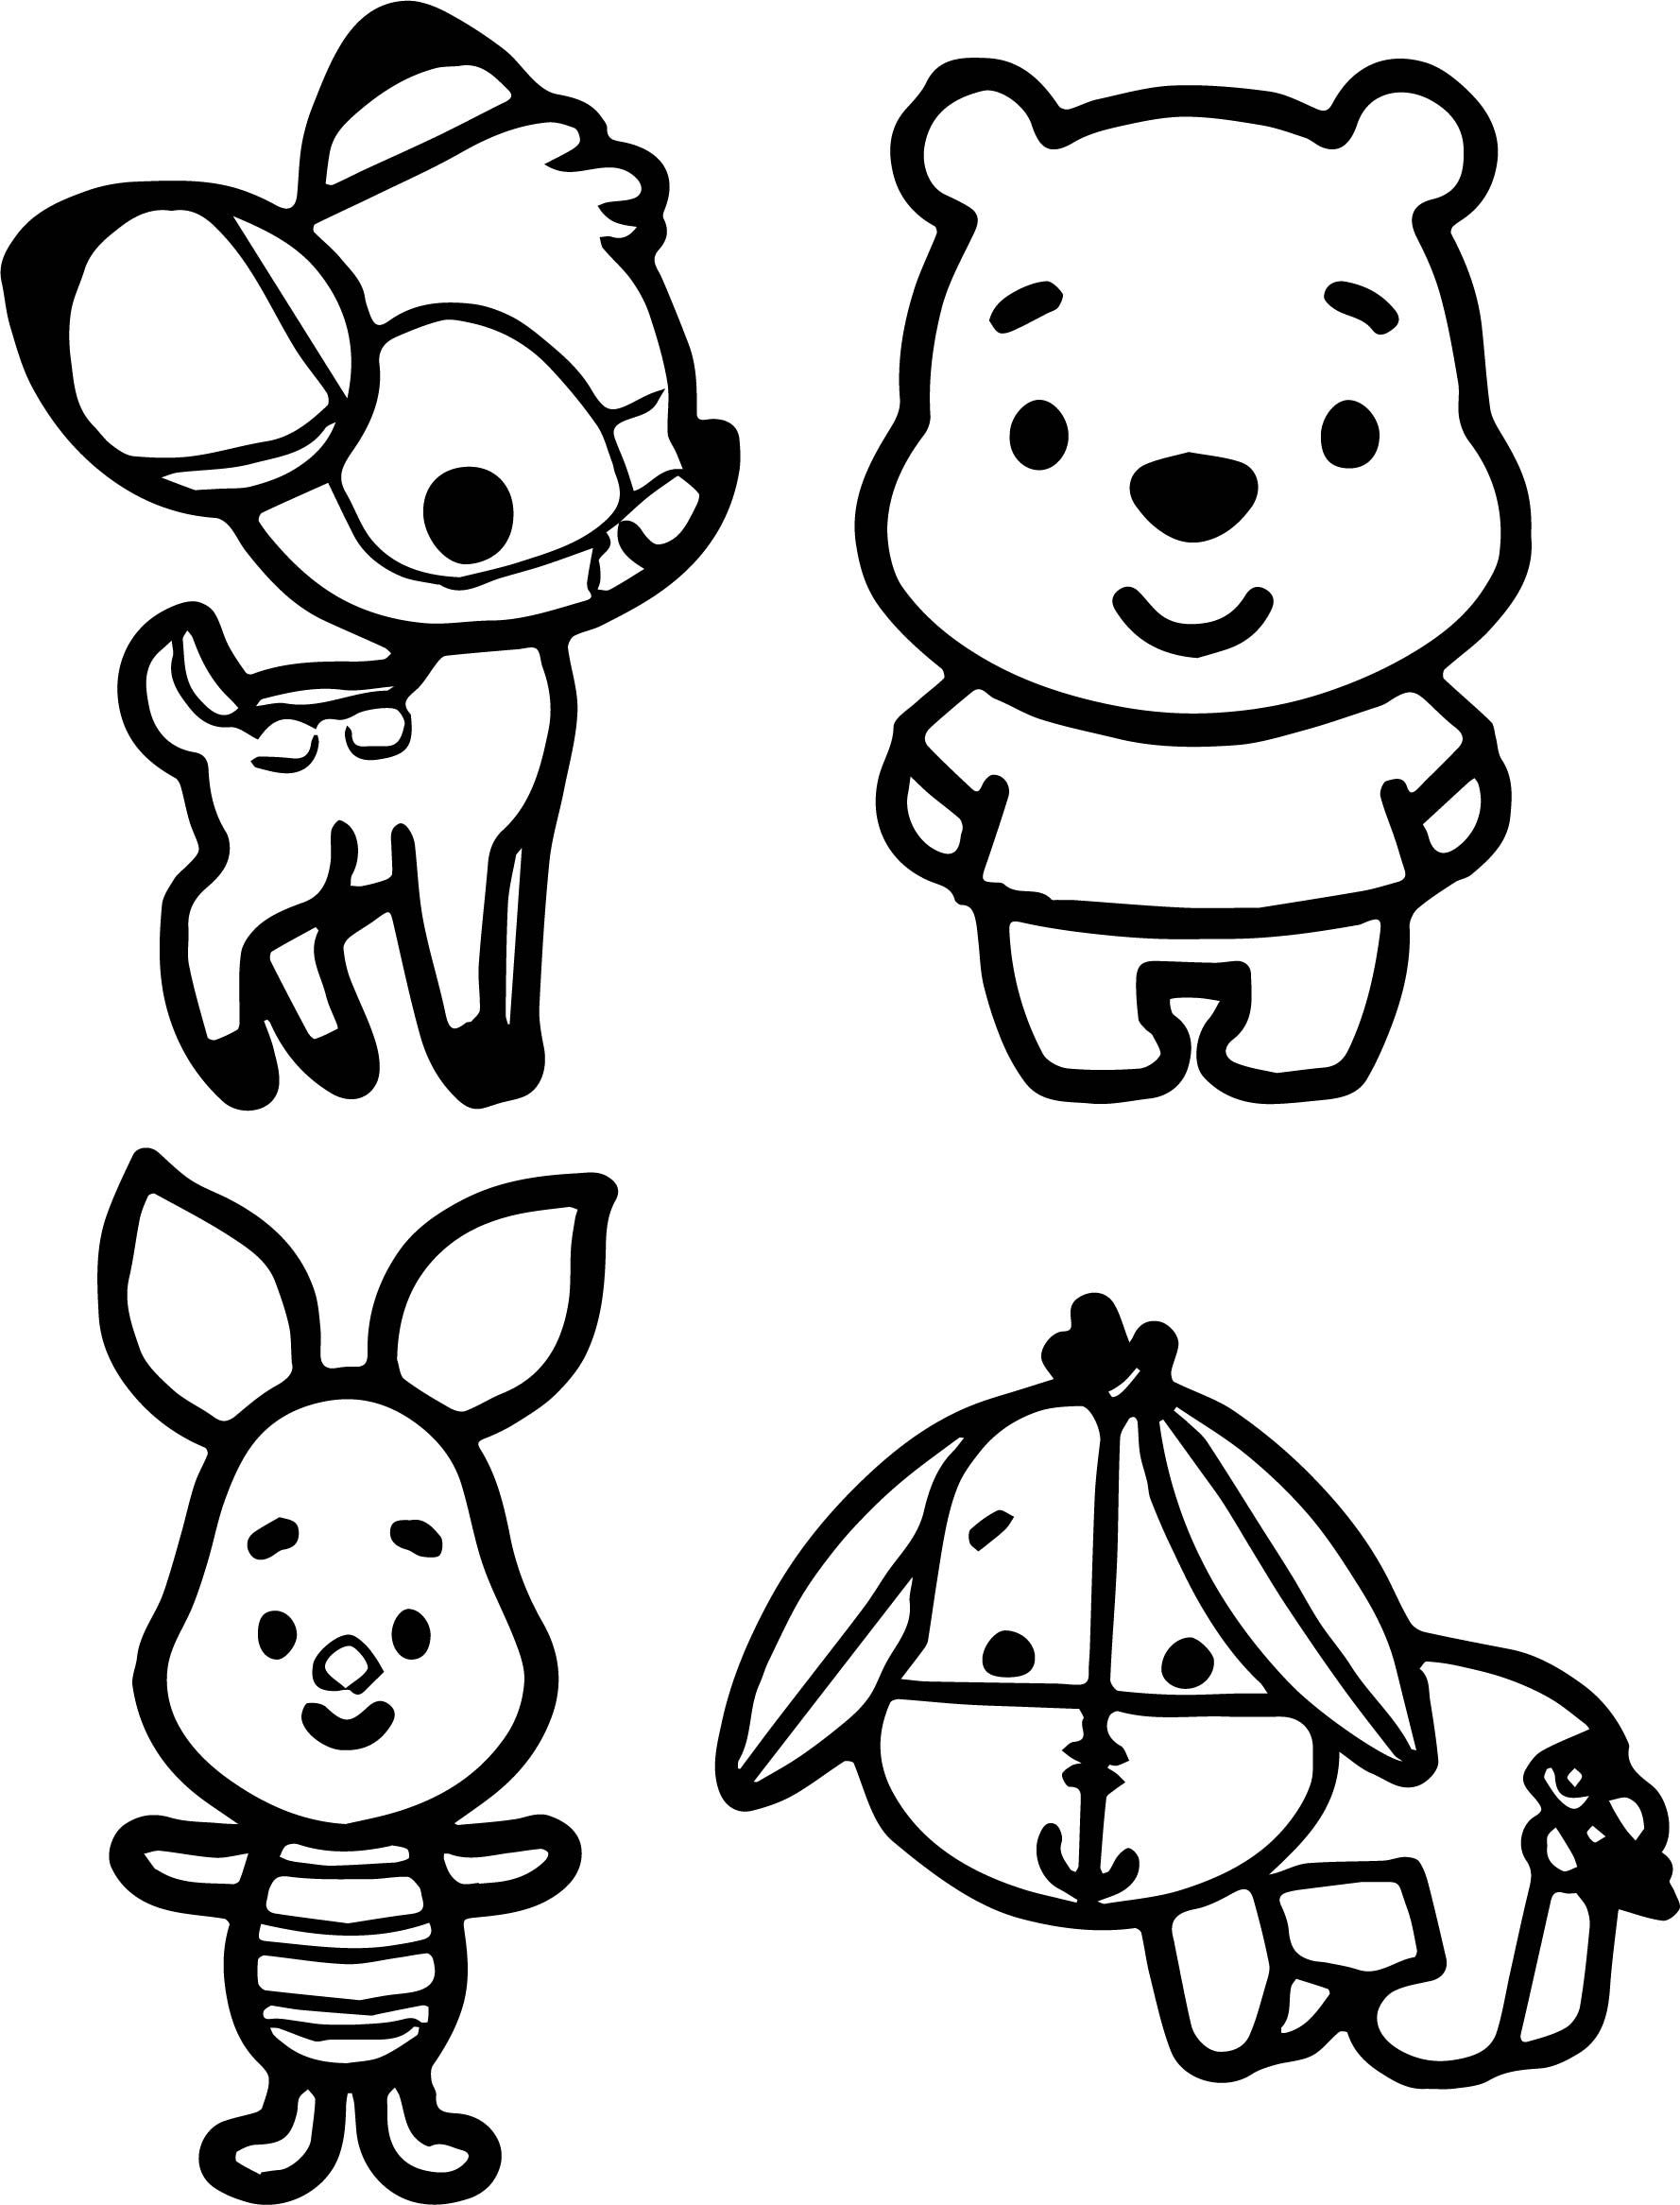 Winnie The Pooh Coloring Pages Winnie The Pooh Drawing Disney